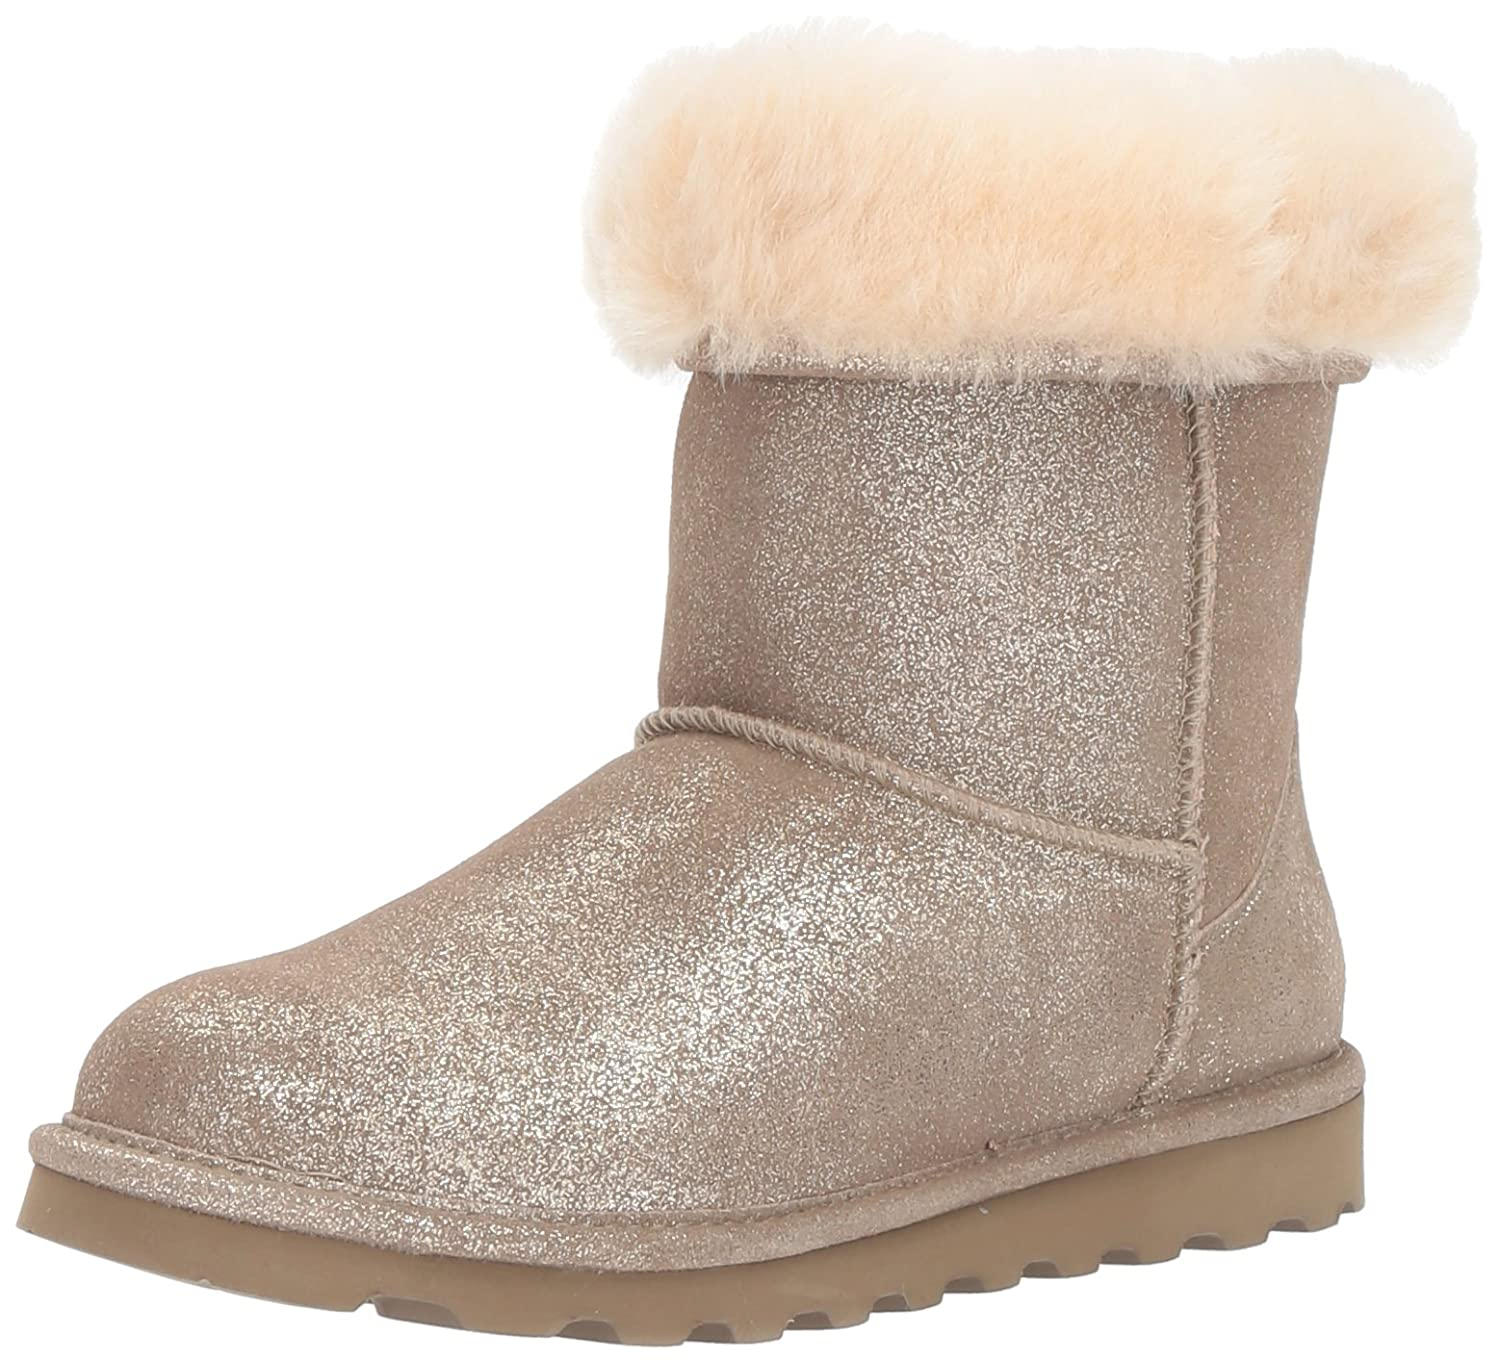 BEARPAW Women's Elle Short Winter Boot B06XRP1BCH 10 B(M) US|Pewter Distressed